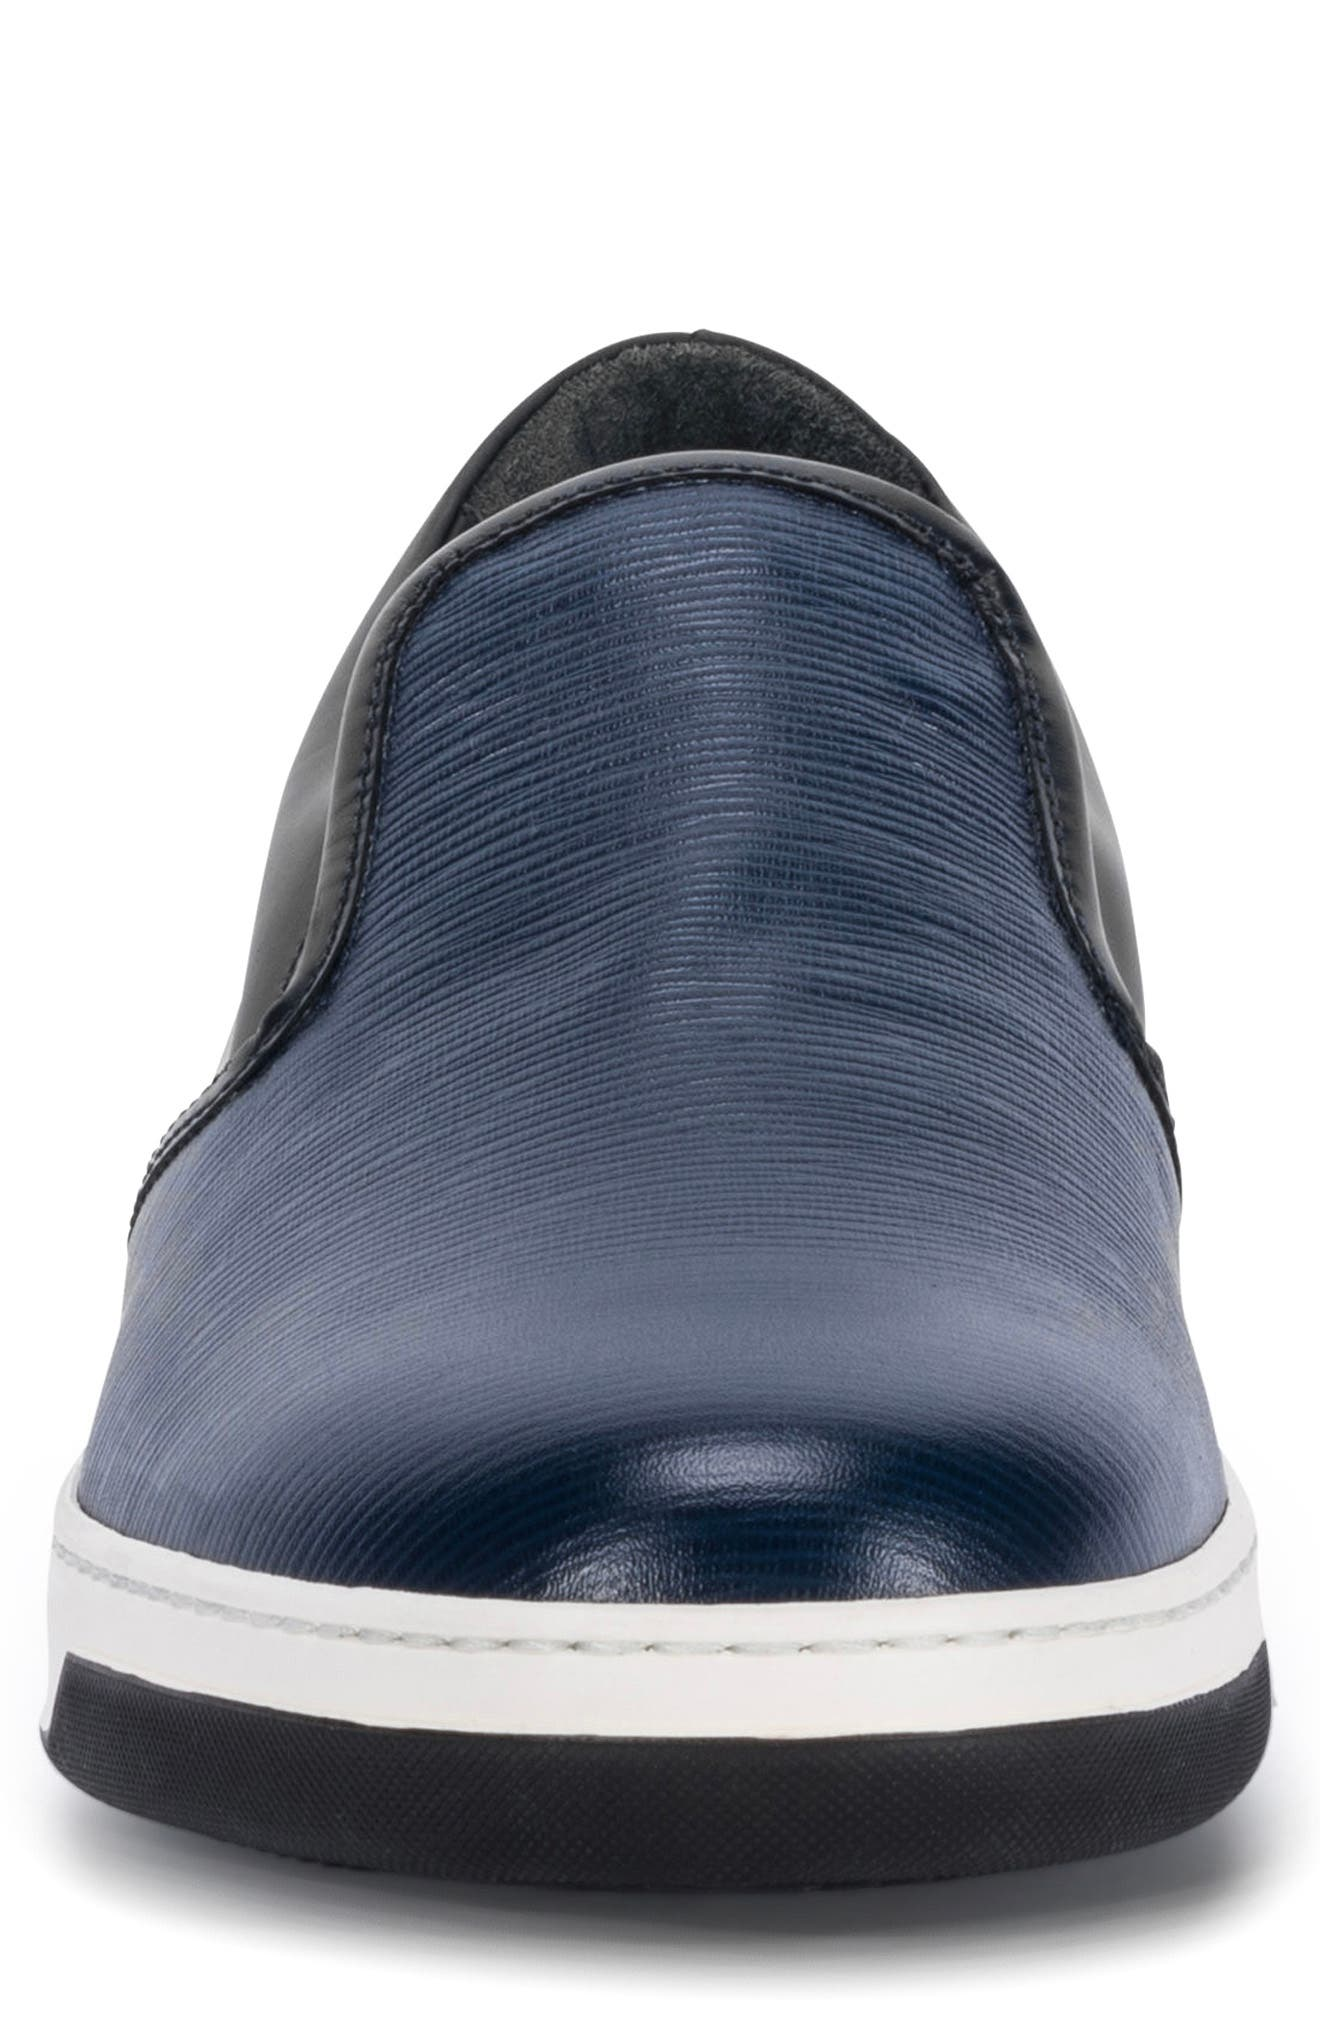 Santorini Slip-On Sneaker,                             Alternate thumbnail 4, color,                             Blue